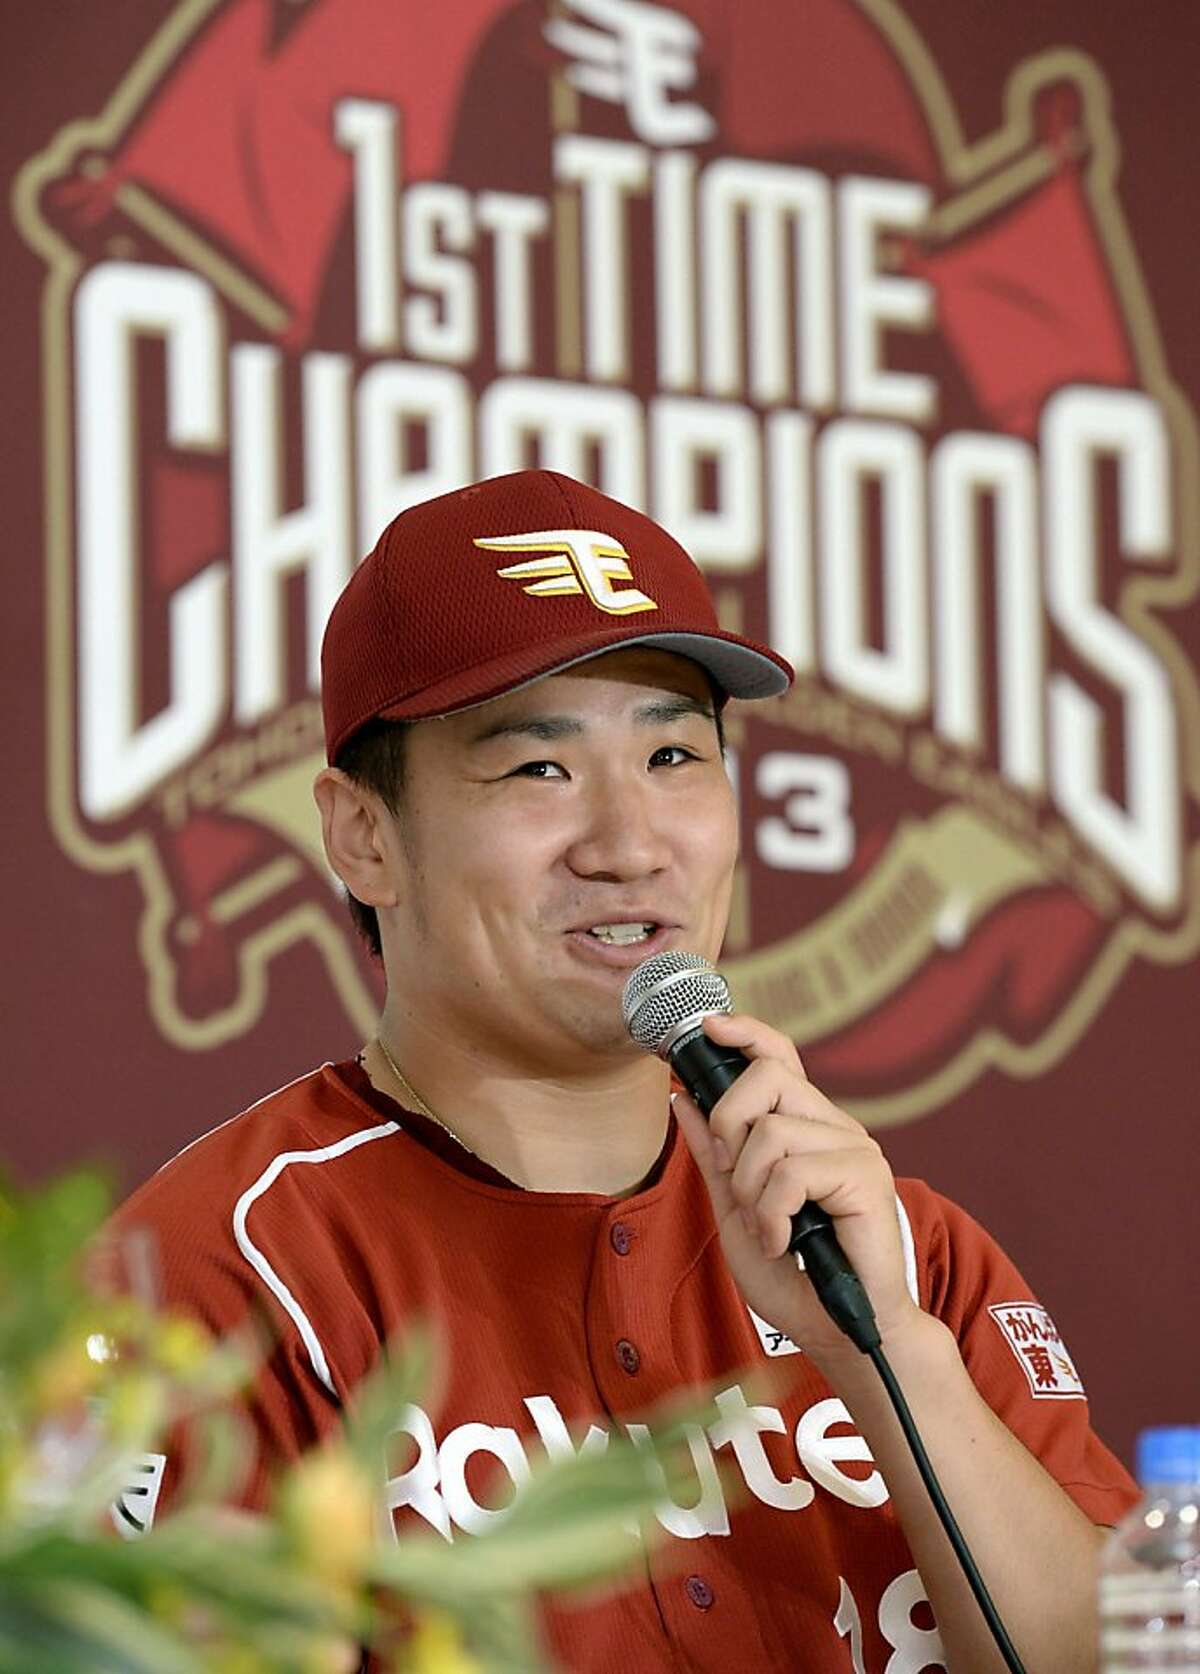 In this Thursday, Sept. 26, 2013 photo, Rakuten Eagles pitcher Masahiro Tanaka speaks at a news conference after defeating the Seibu Lions to clinch the team's first Pacific League franchise in Tokorozawa, Saitama Prefecture, northwest of Tokyo. Tanaka will be aiming to extend one of the most successful runs in the history of professional baseball when he takes the mound for the Rakuten Eagles in Game 1 of the Japan Series on Saturday, Oct. 26. (AP Photo/Kyodo News) JAPAN OUT, CREDIT MANDATORY